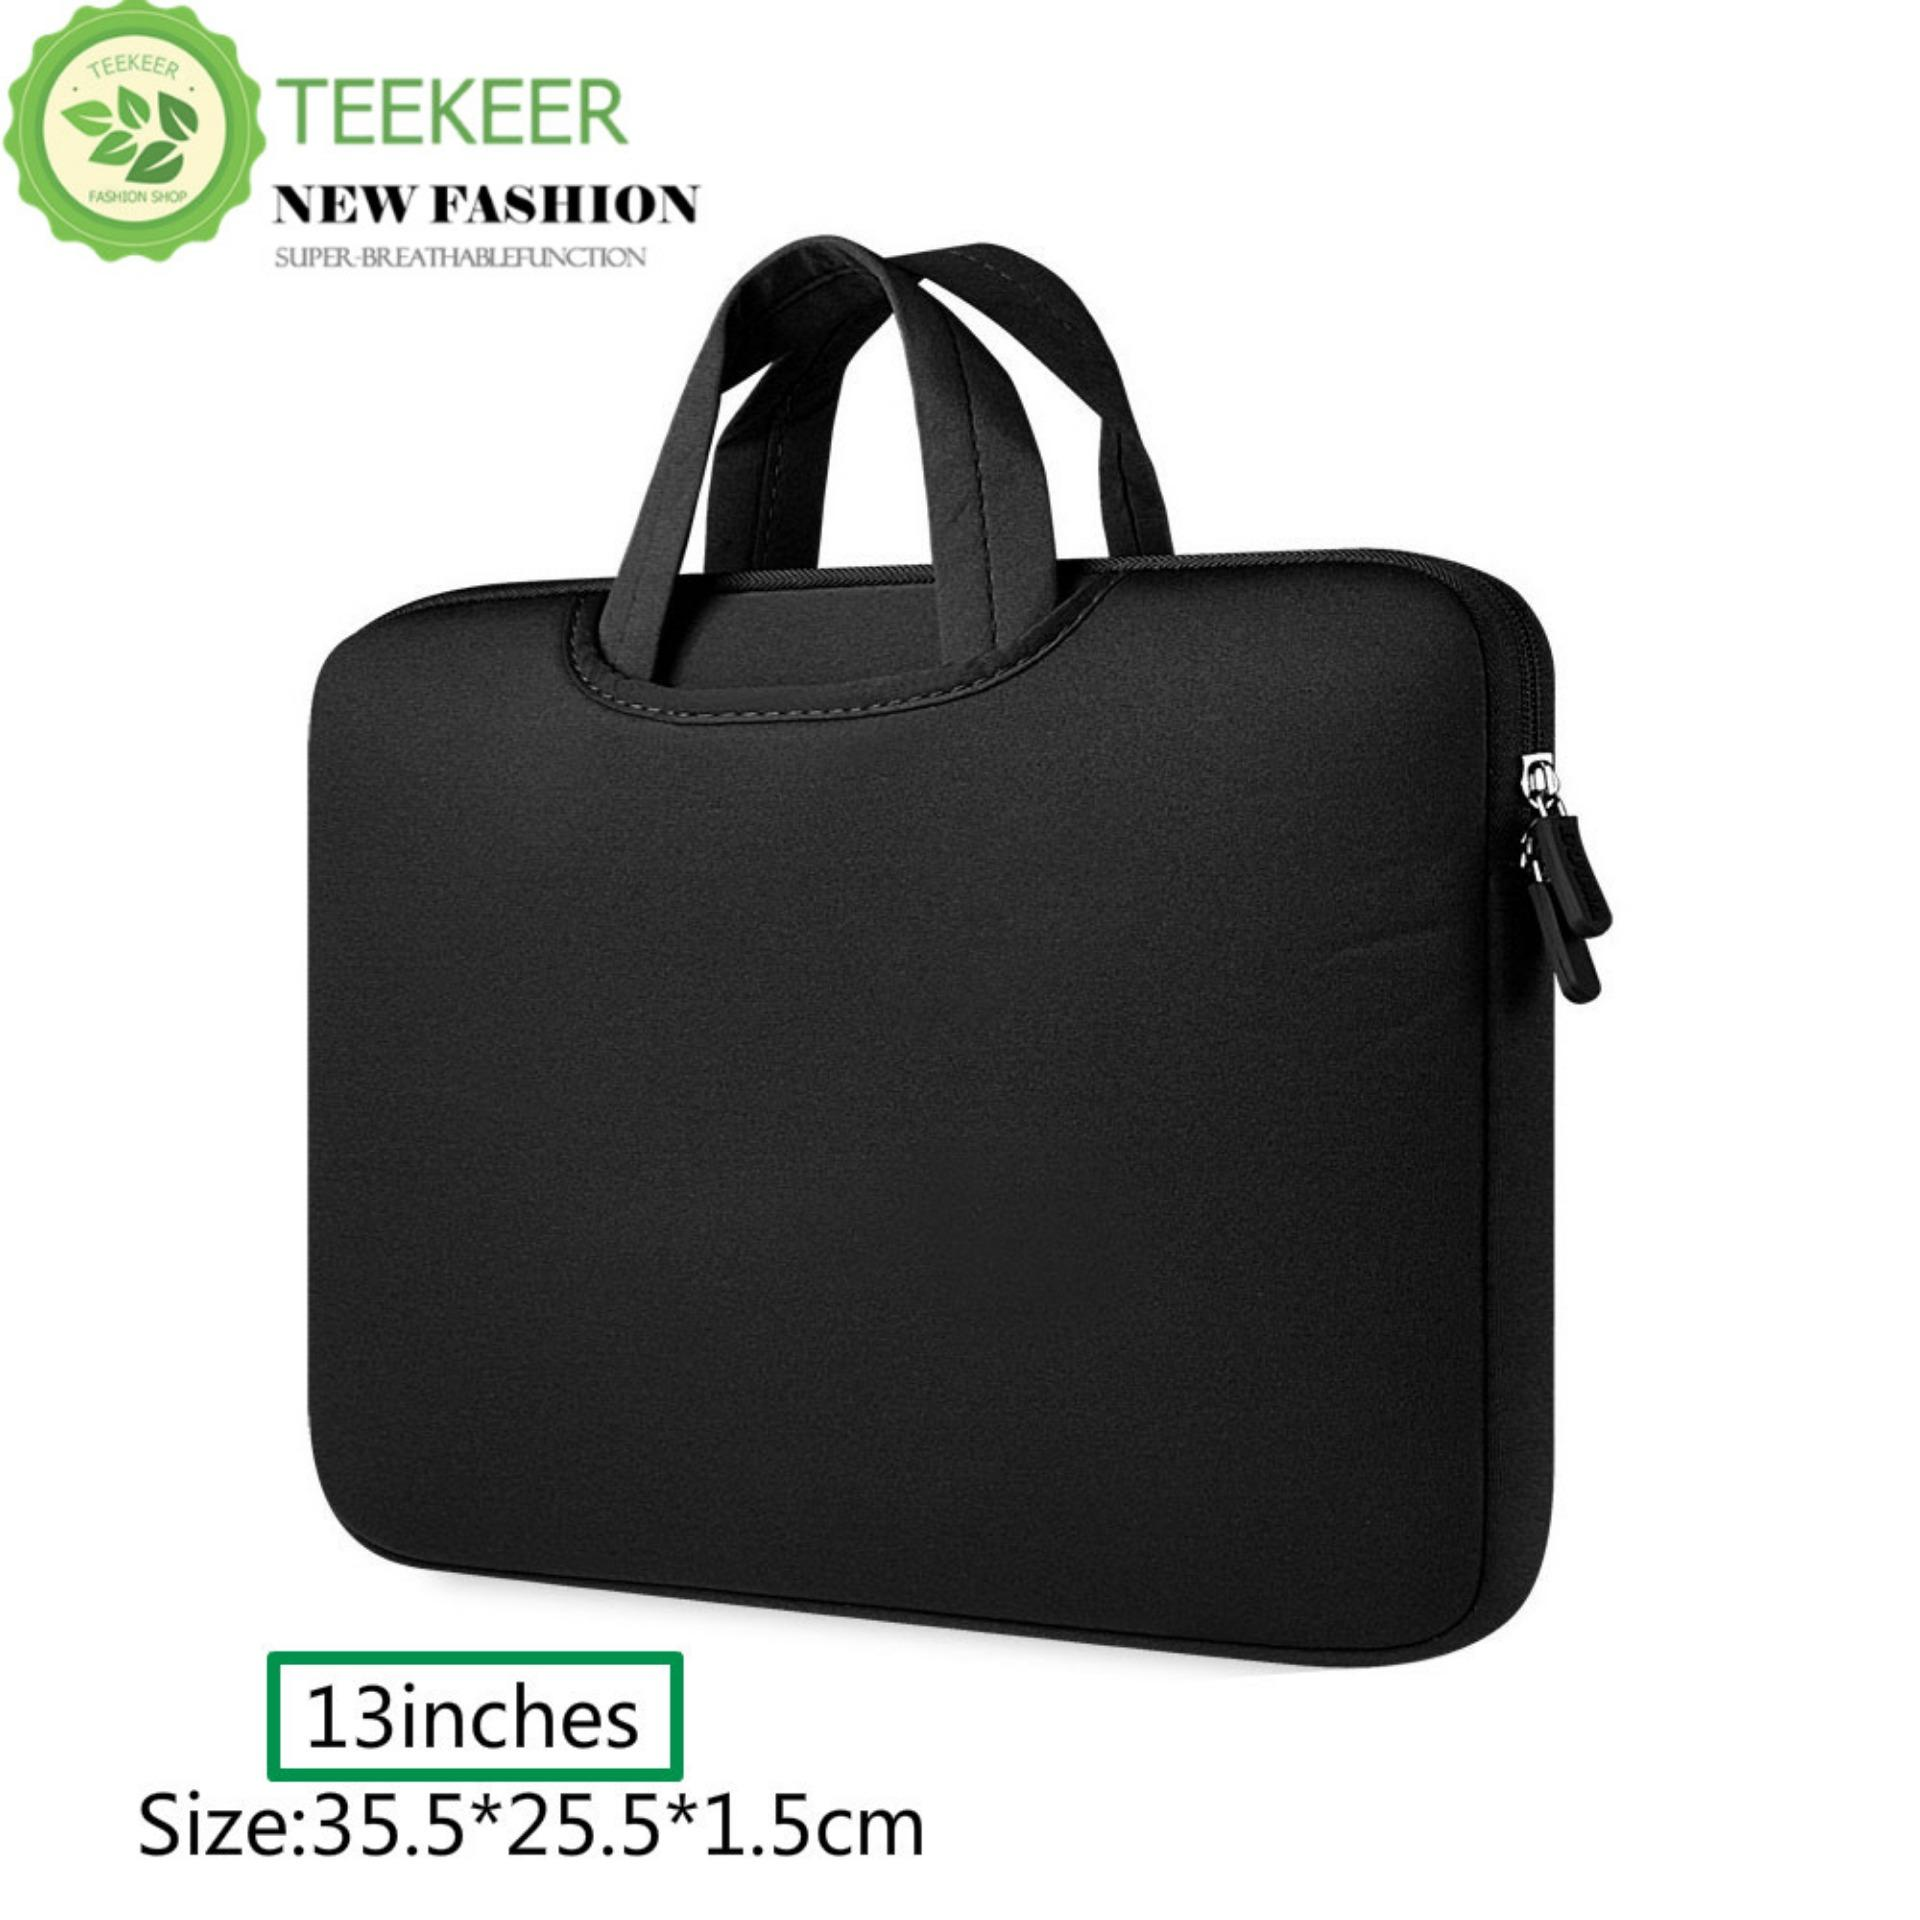 Teekeer Laptop Notebook Sleeve Case Bag Cover For MacBook Air Pro 13 Inch PC 581a39c85524